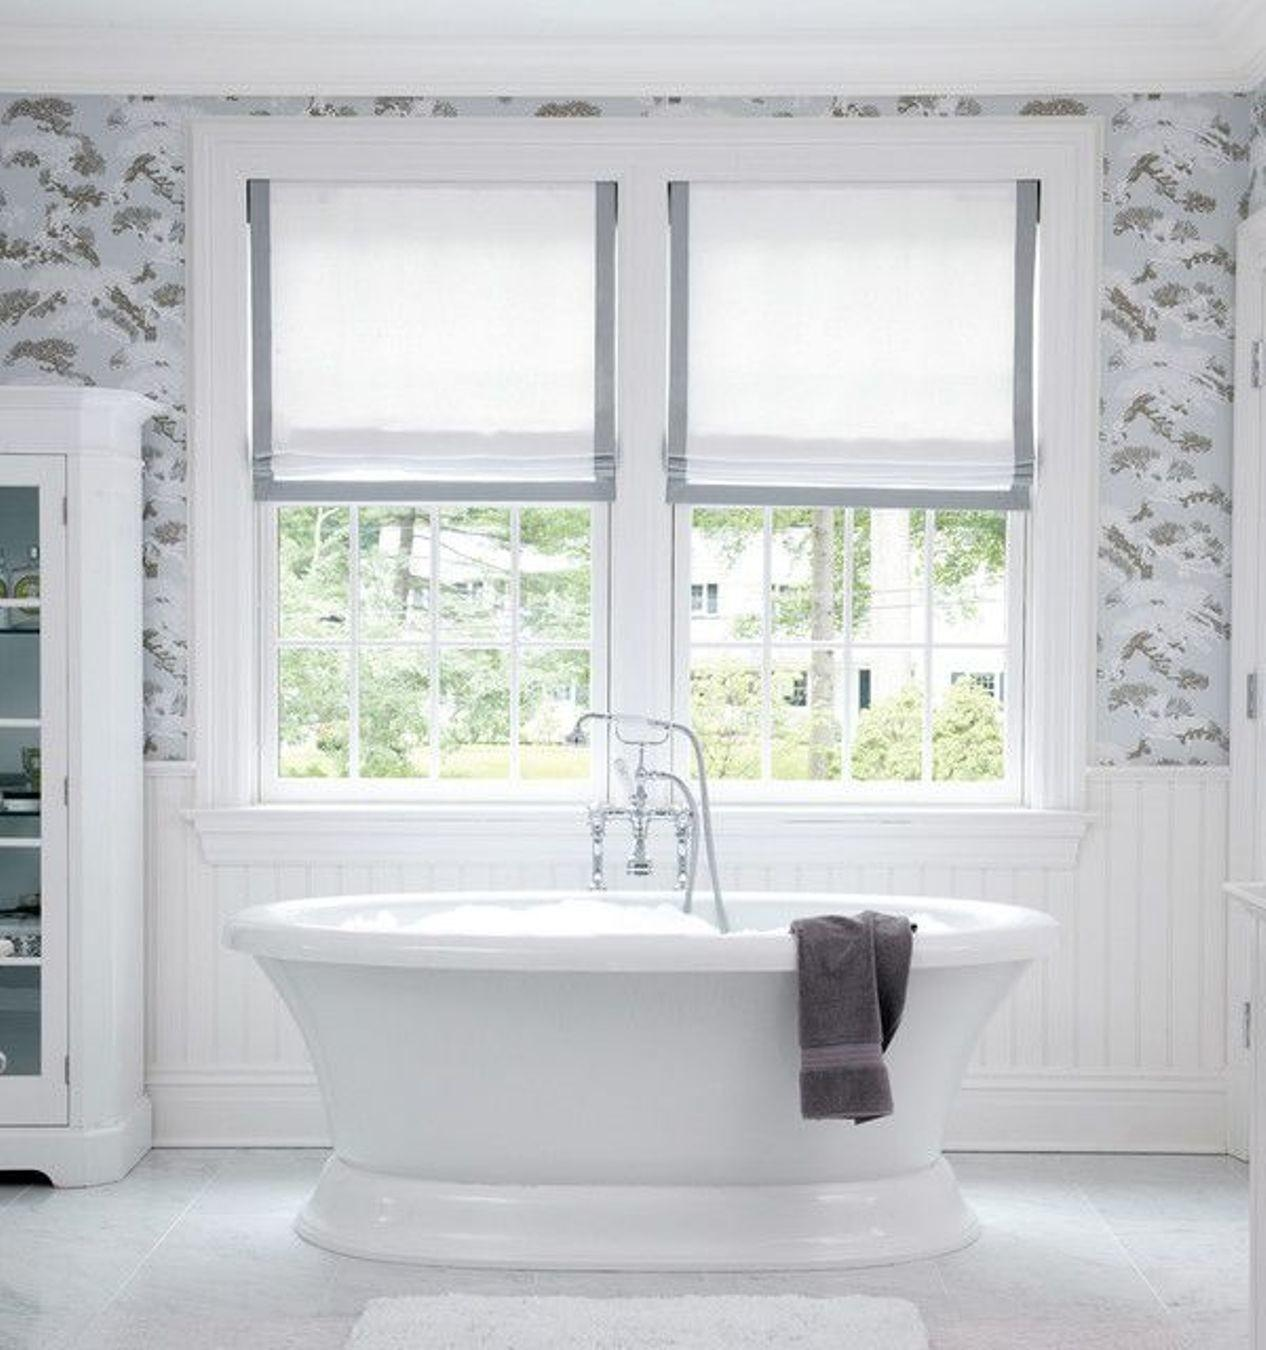 Contemporary Bathroom Window Treatments That Ideal For Your Dream Home In 2020 Great Photos Decoratorist